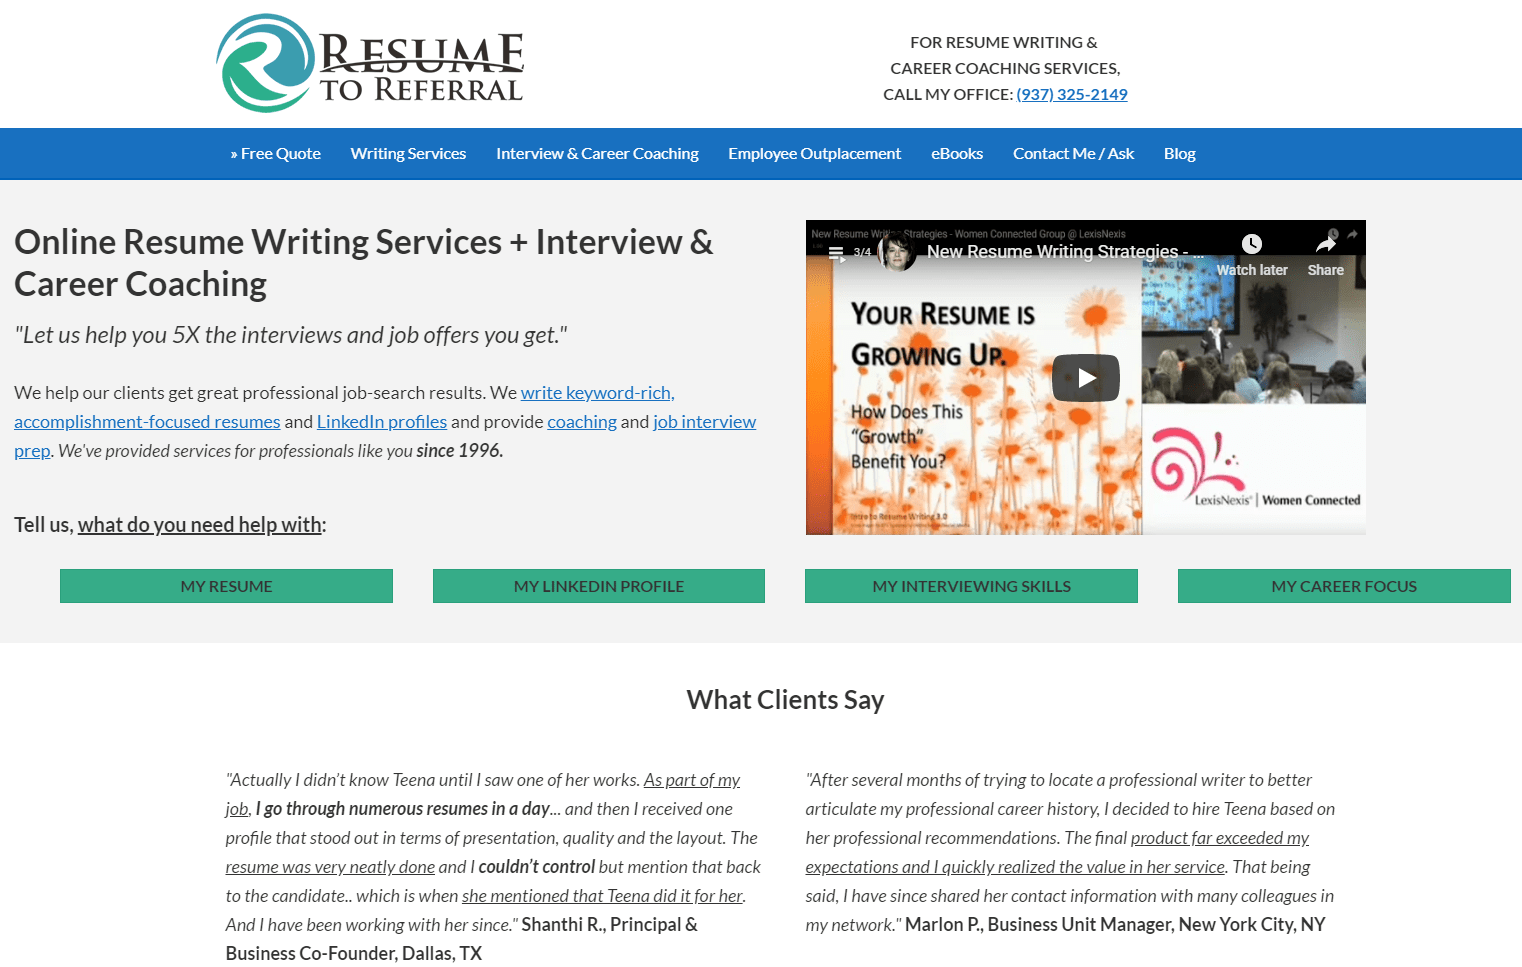 10 Sales Resume Service: Resume to Referral Hero Section